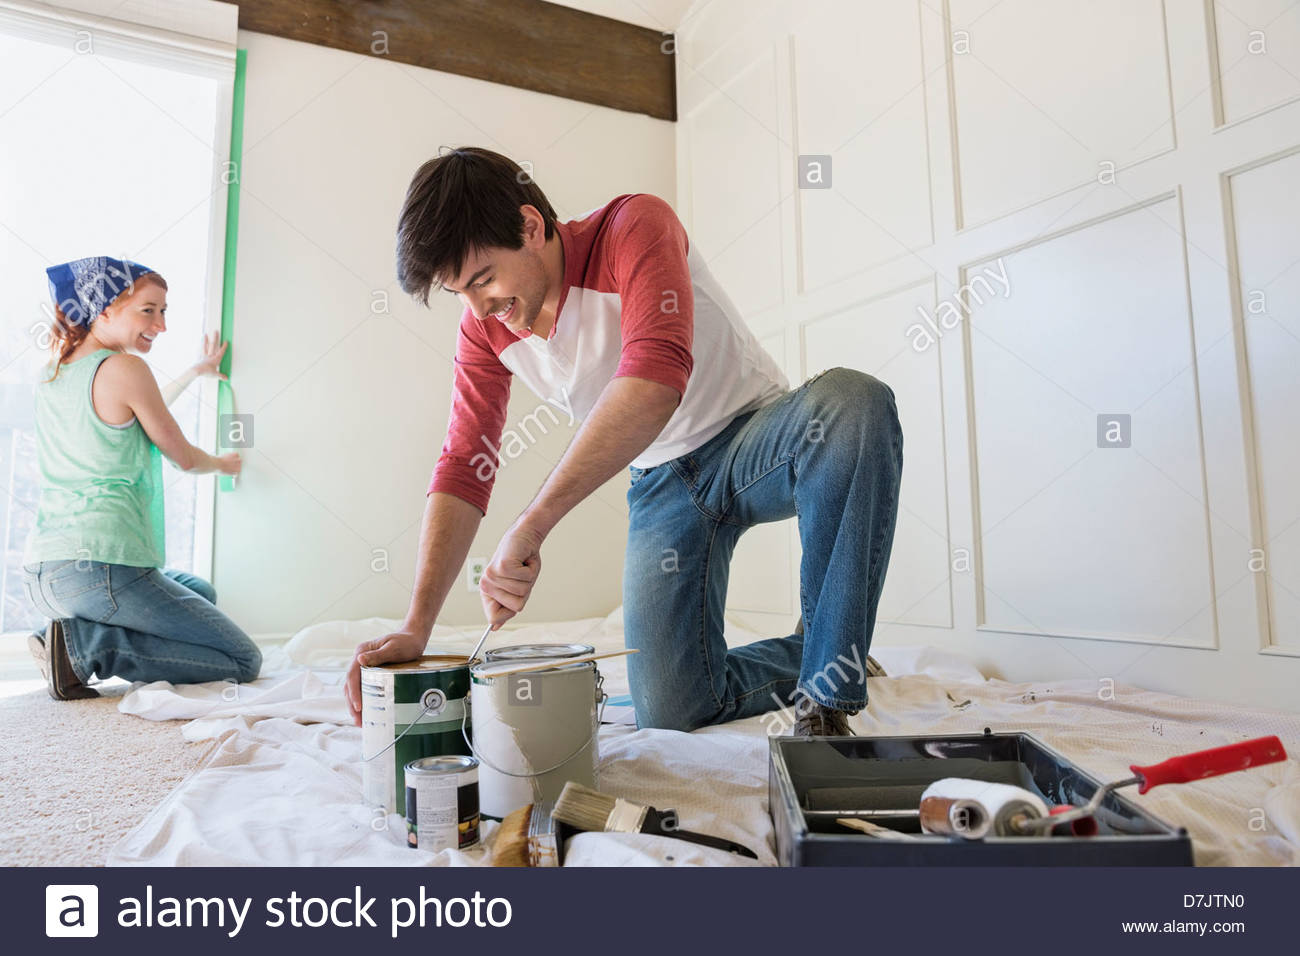 Young couple preparing to paint at home - Stock Image